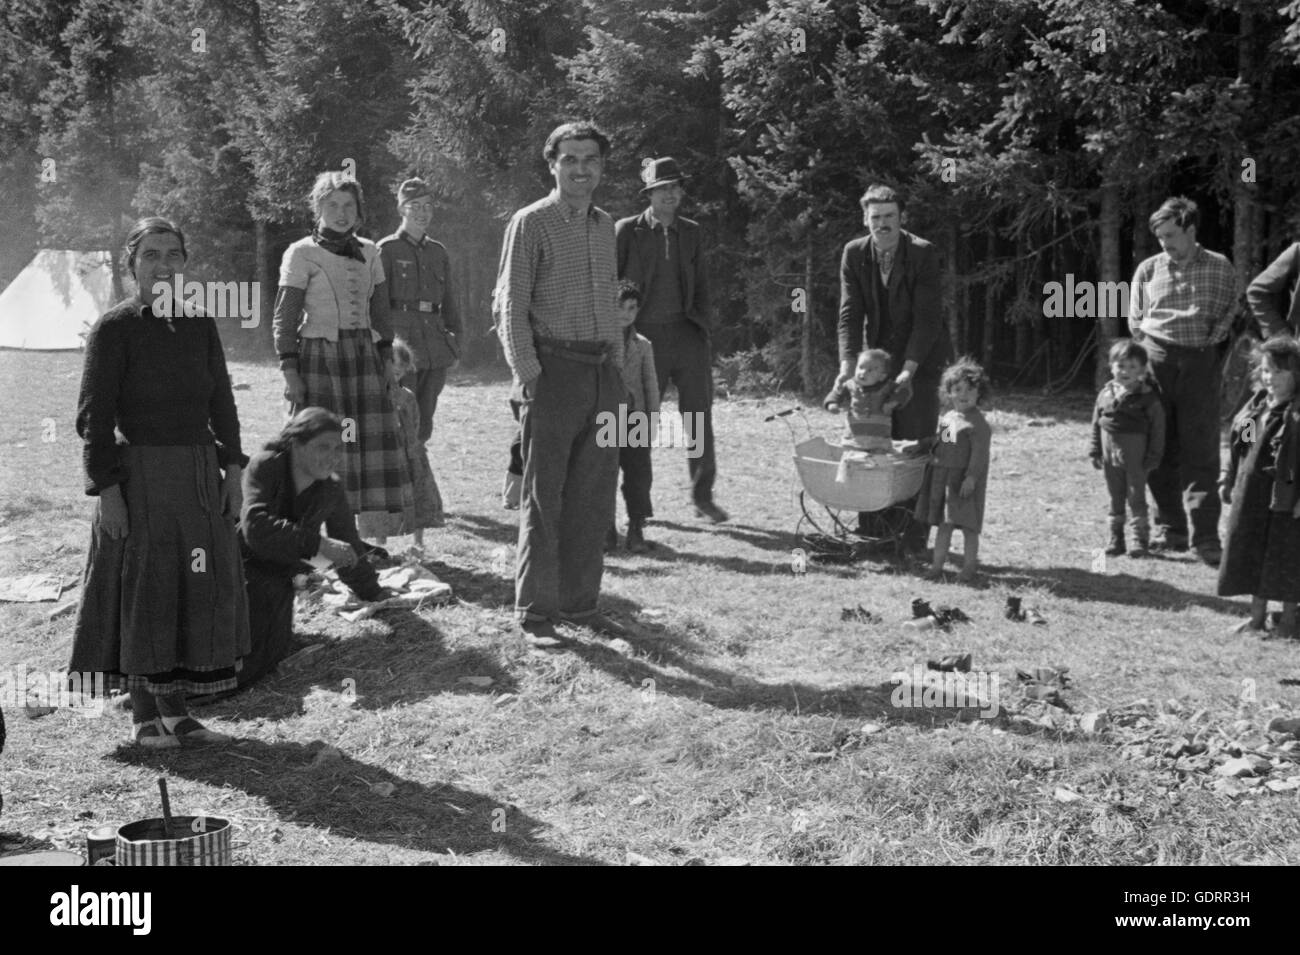 Sinti and Romanies in France, 1941 - Stock Image